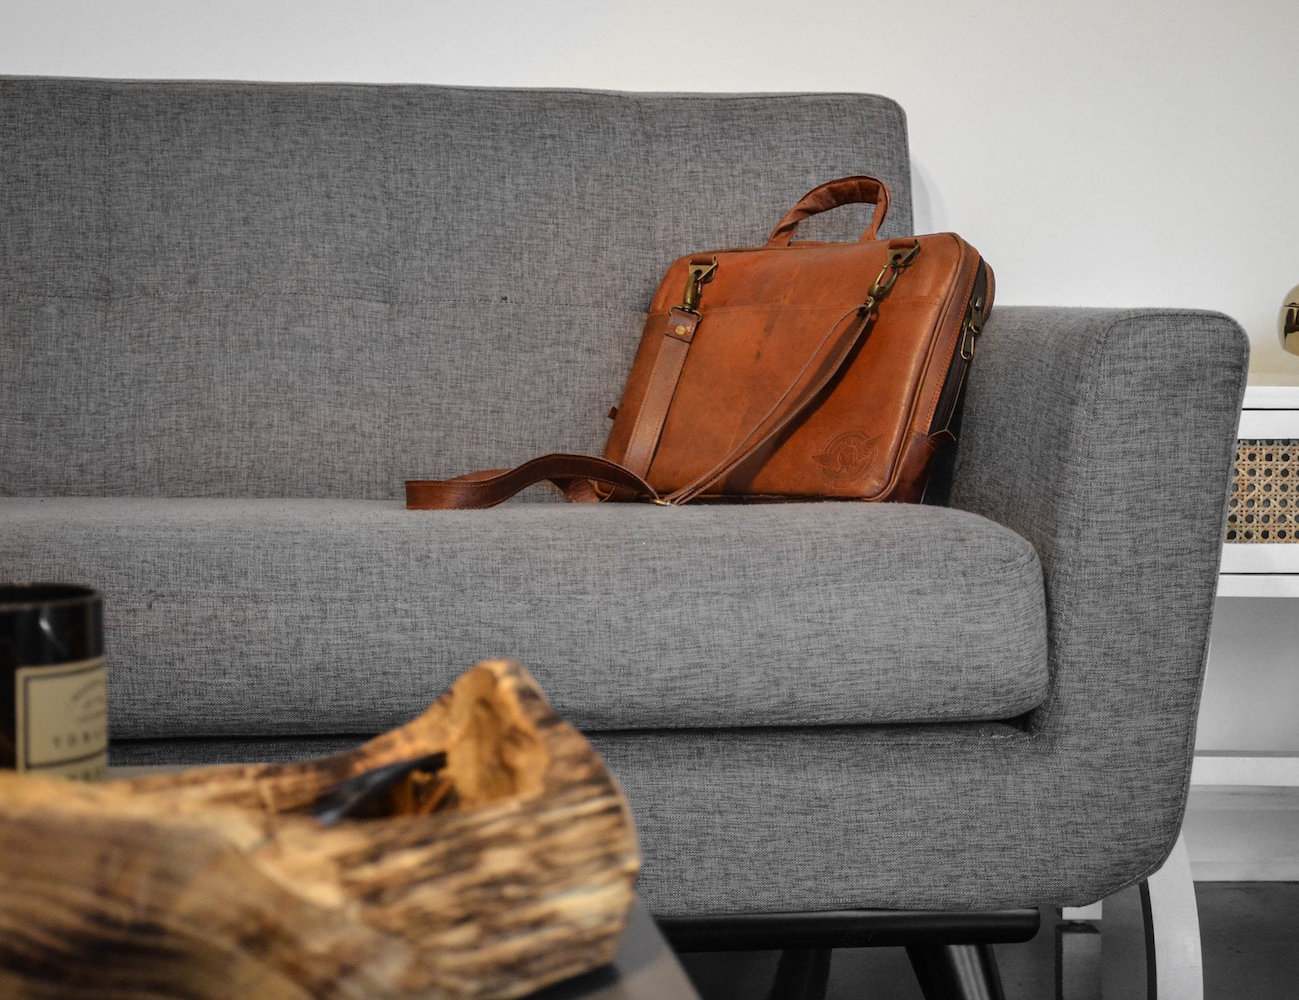 Leather Laptop Sling Bag by Johnny Fly Co